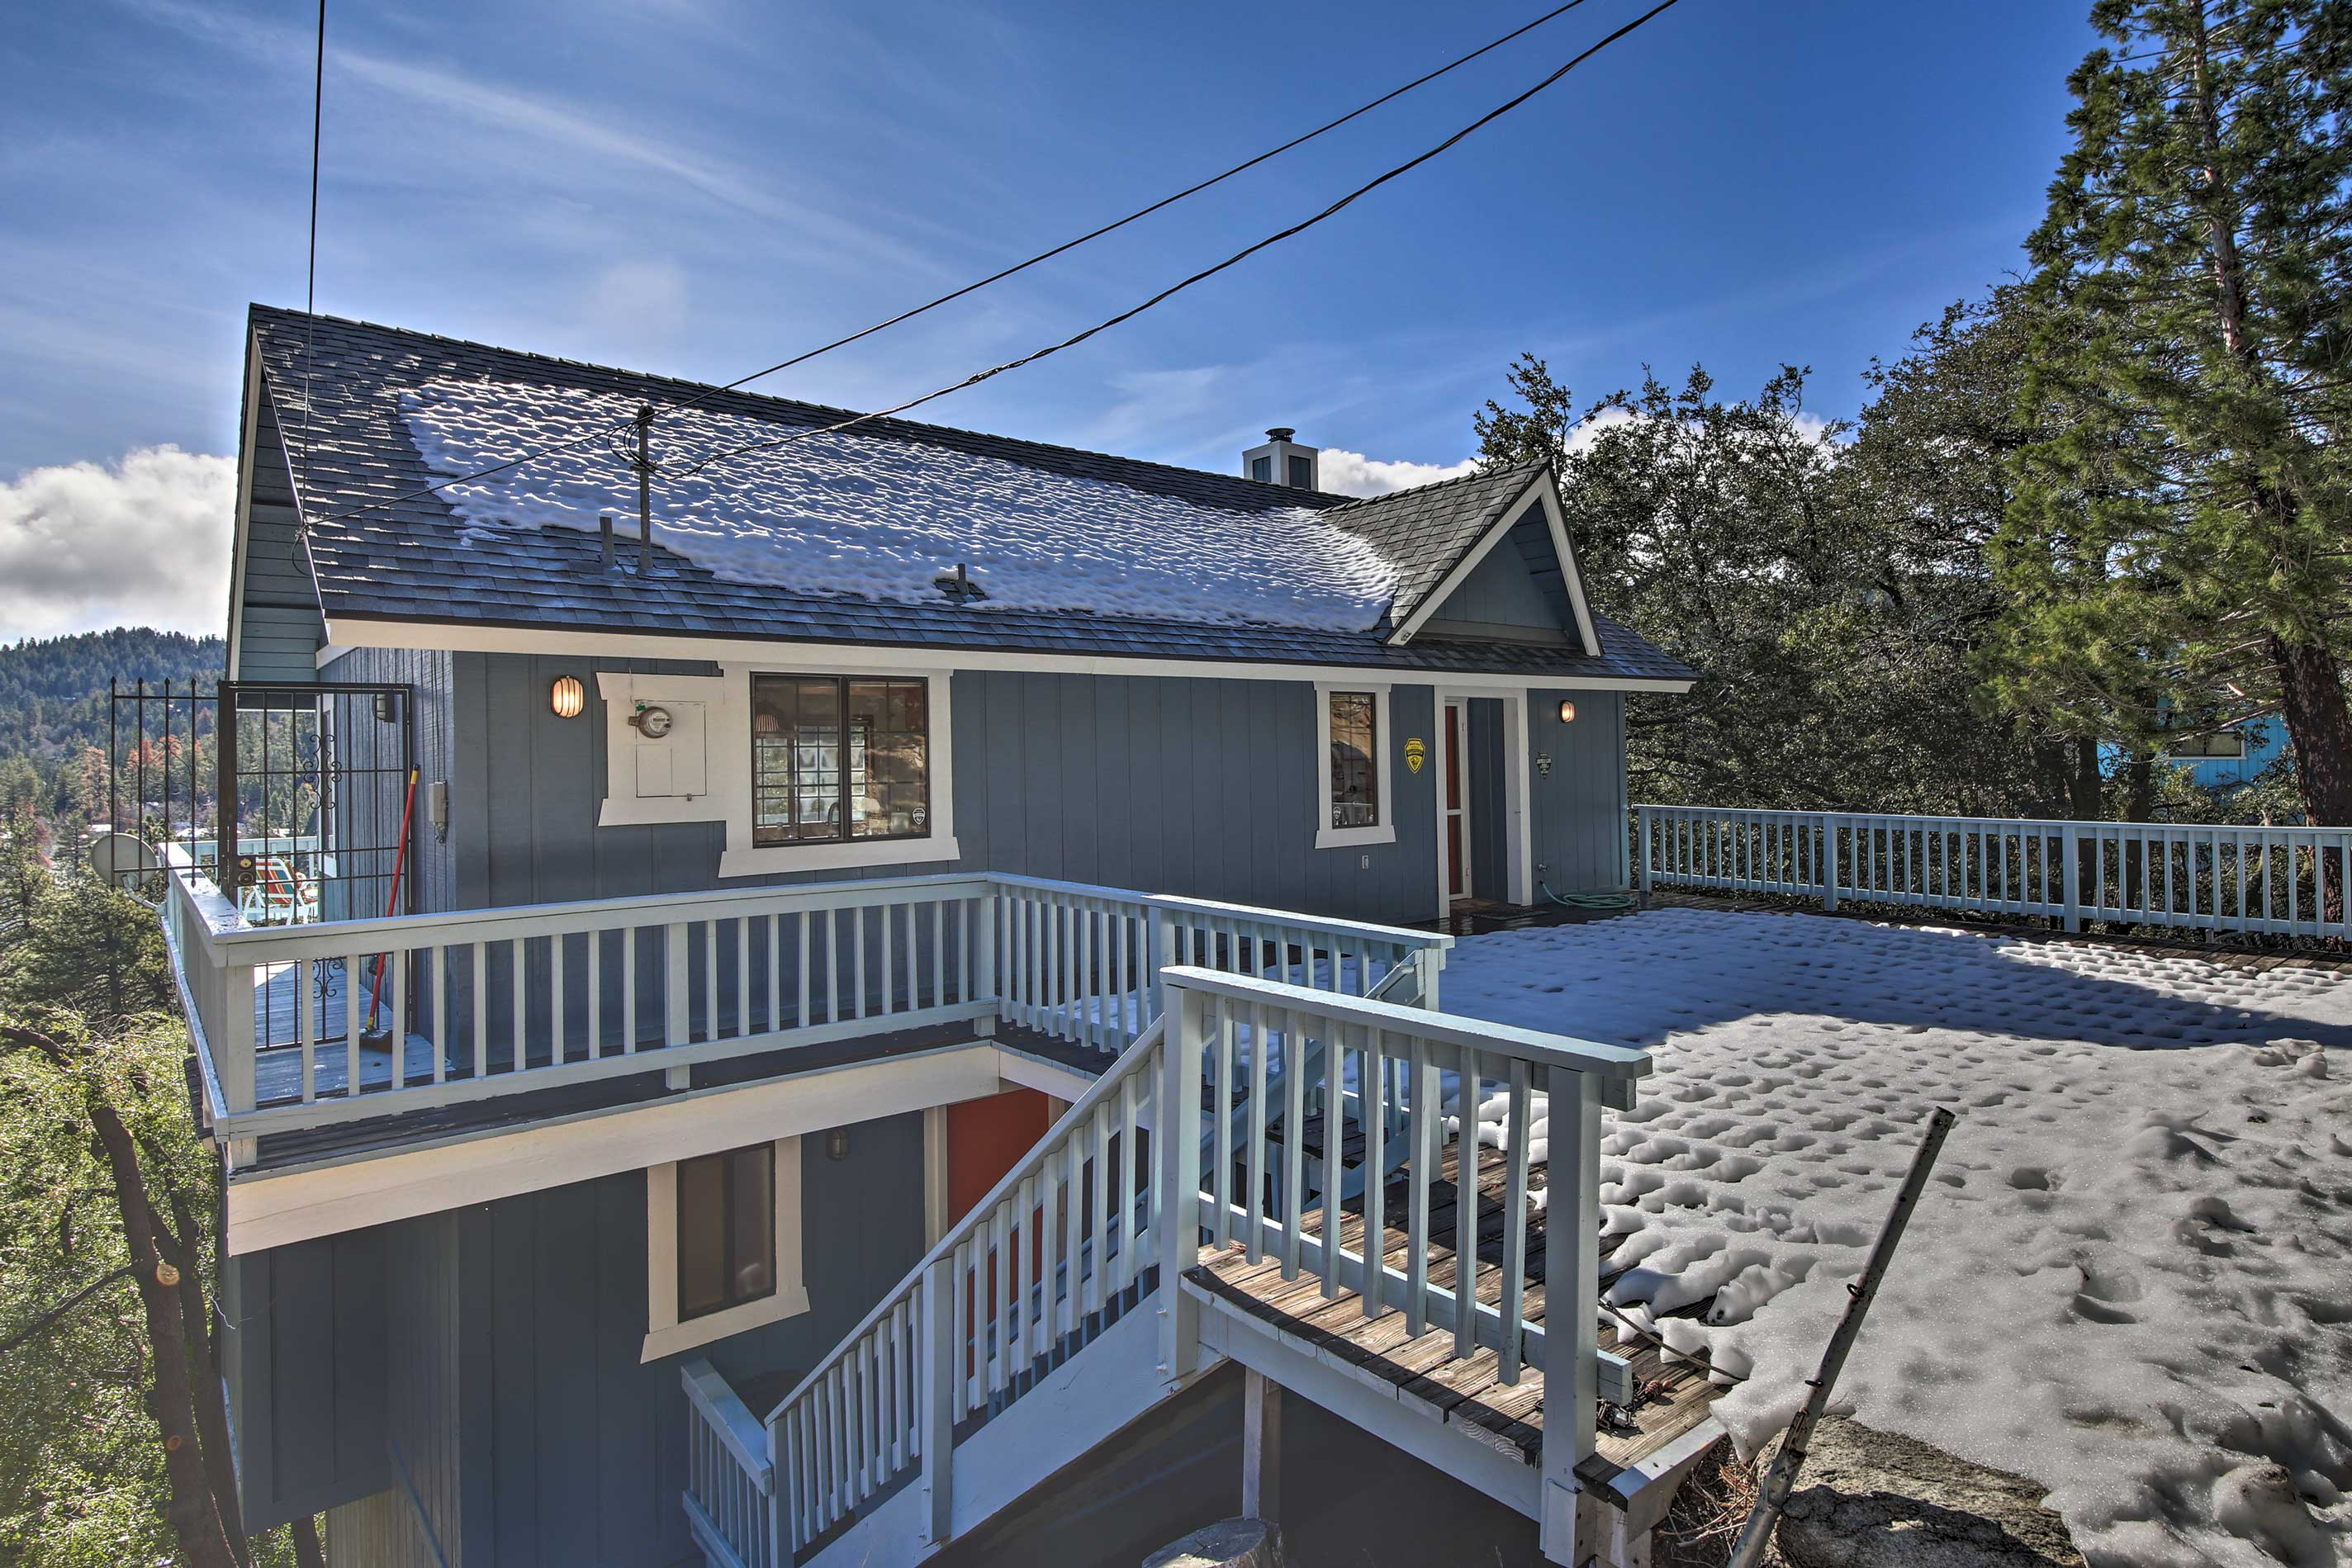 Nestled on the side of a hill, this Crestline cabin has it all!